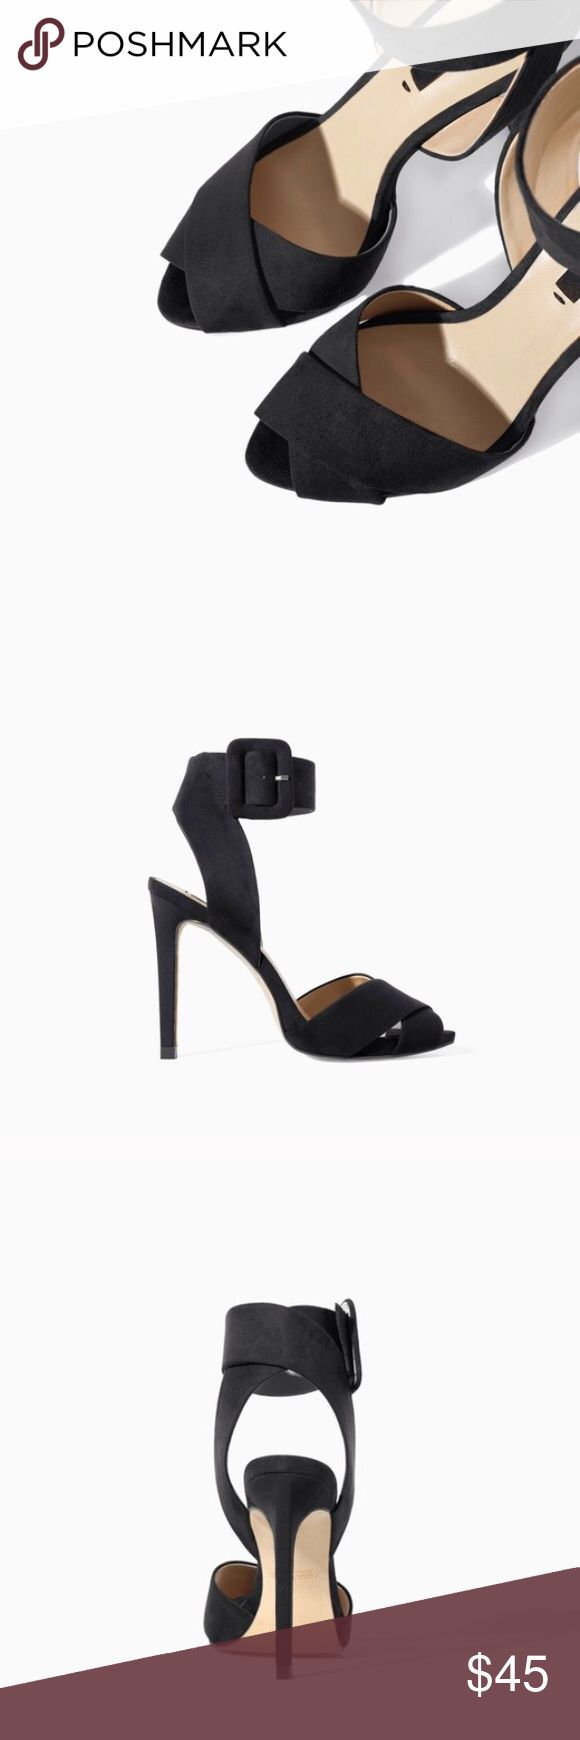 Zara black strap heels! Zara Basic Collection Brand new with tags, never worn, no damages! Size 5-5 1/2 Zara Shoes Heels